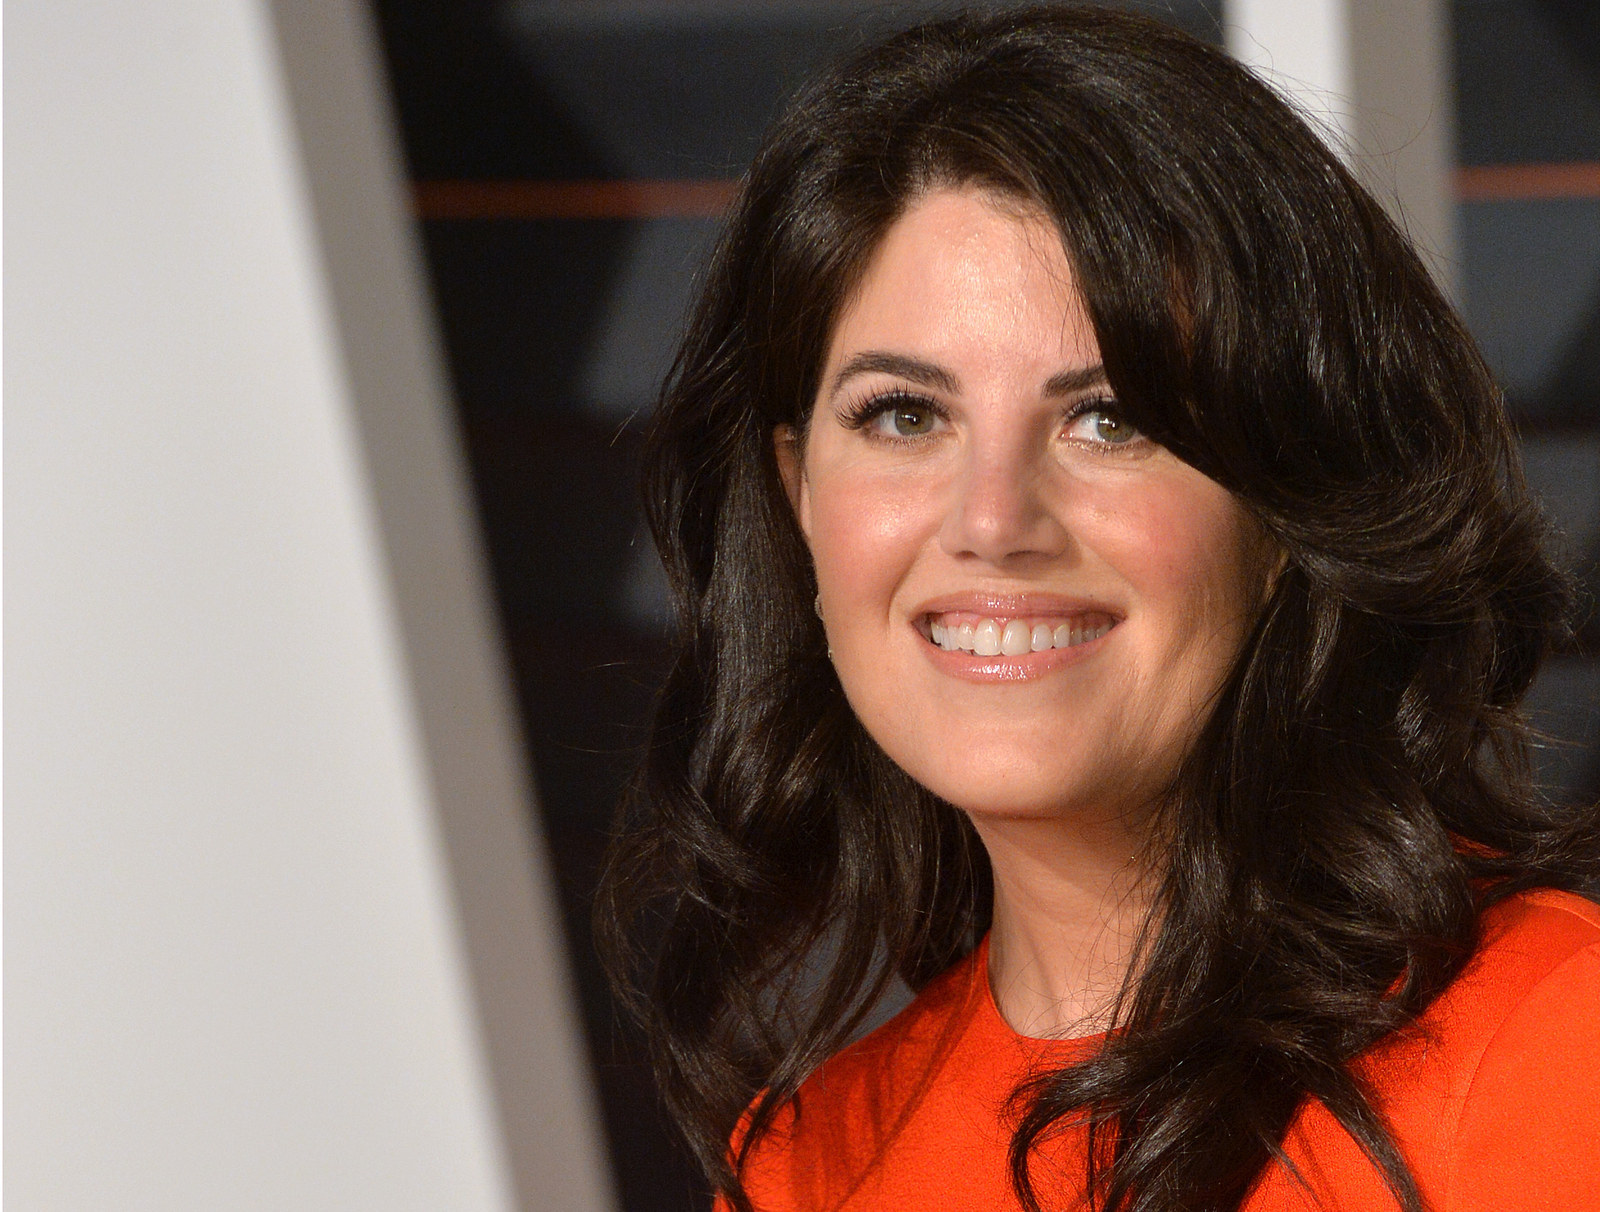 Monica Samille Lewinsky born July 23 1973 is an American activist television personality fashion designer and former White House intern President Bill Clinton